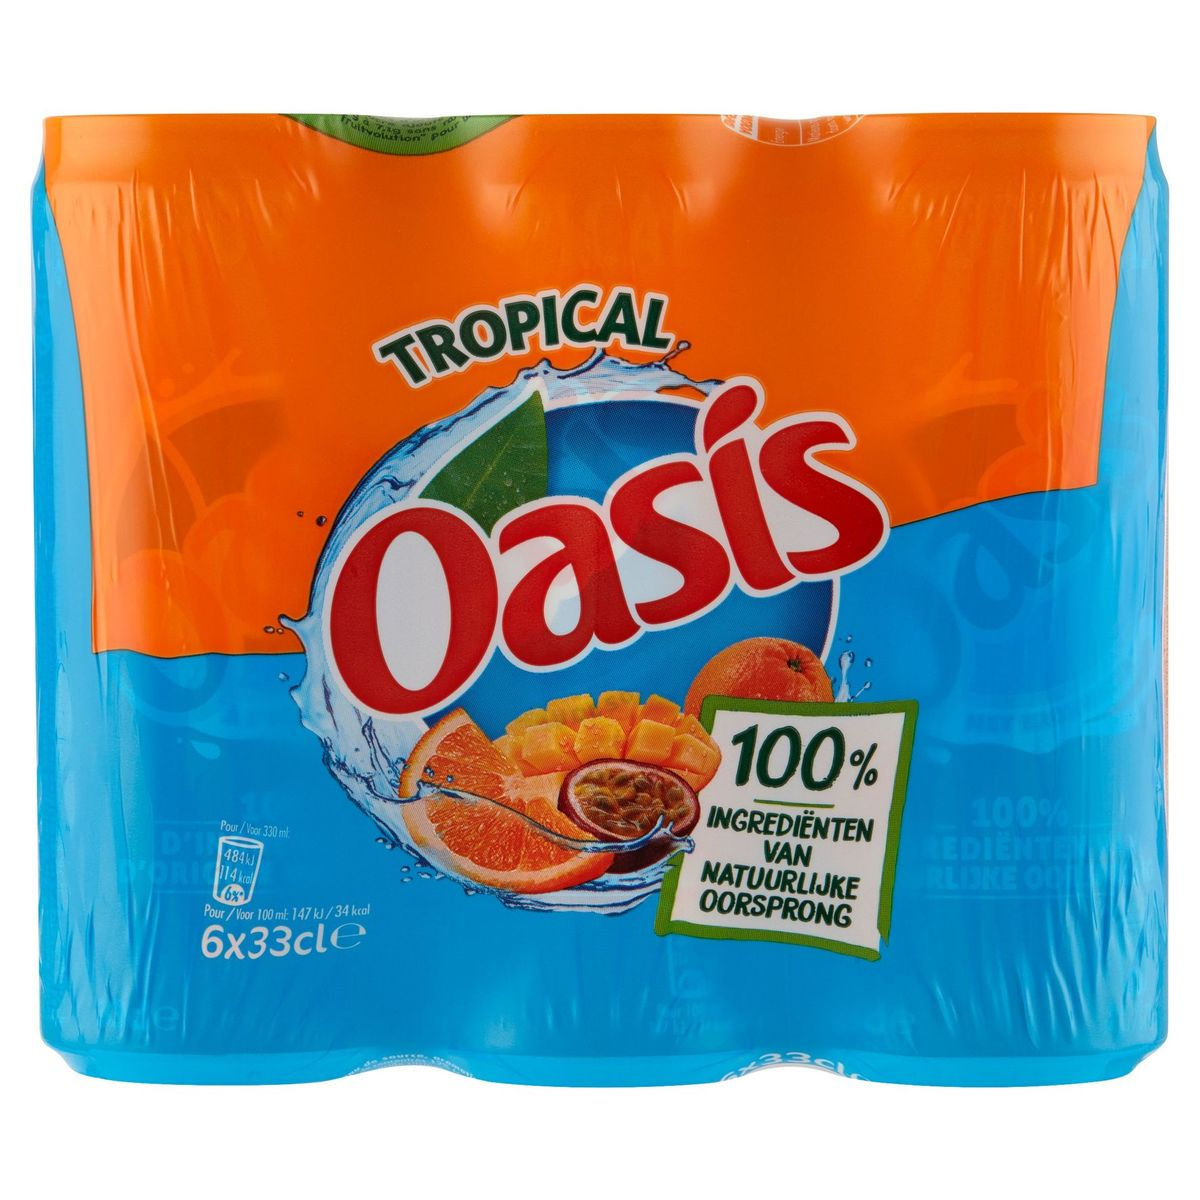 Oasis Tropical 6 x 33 cl